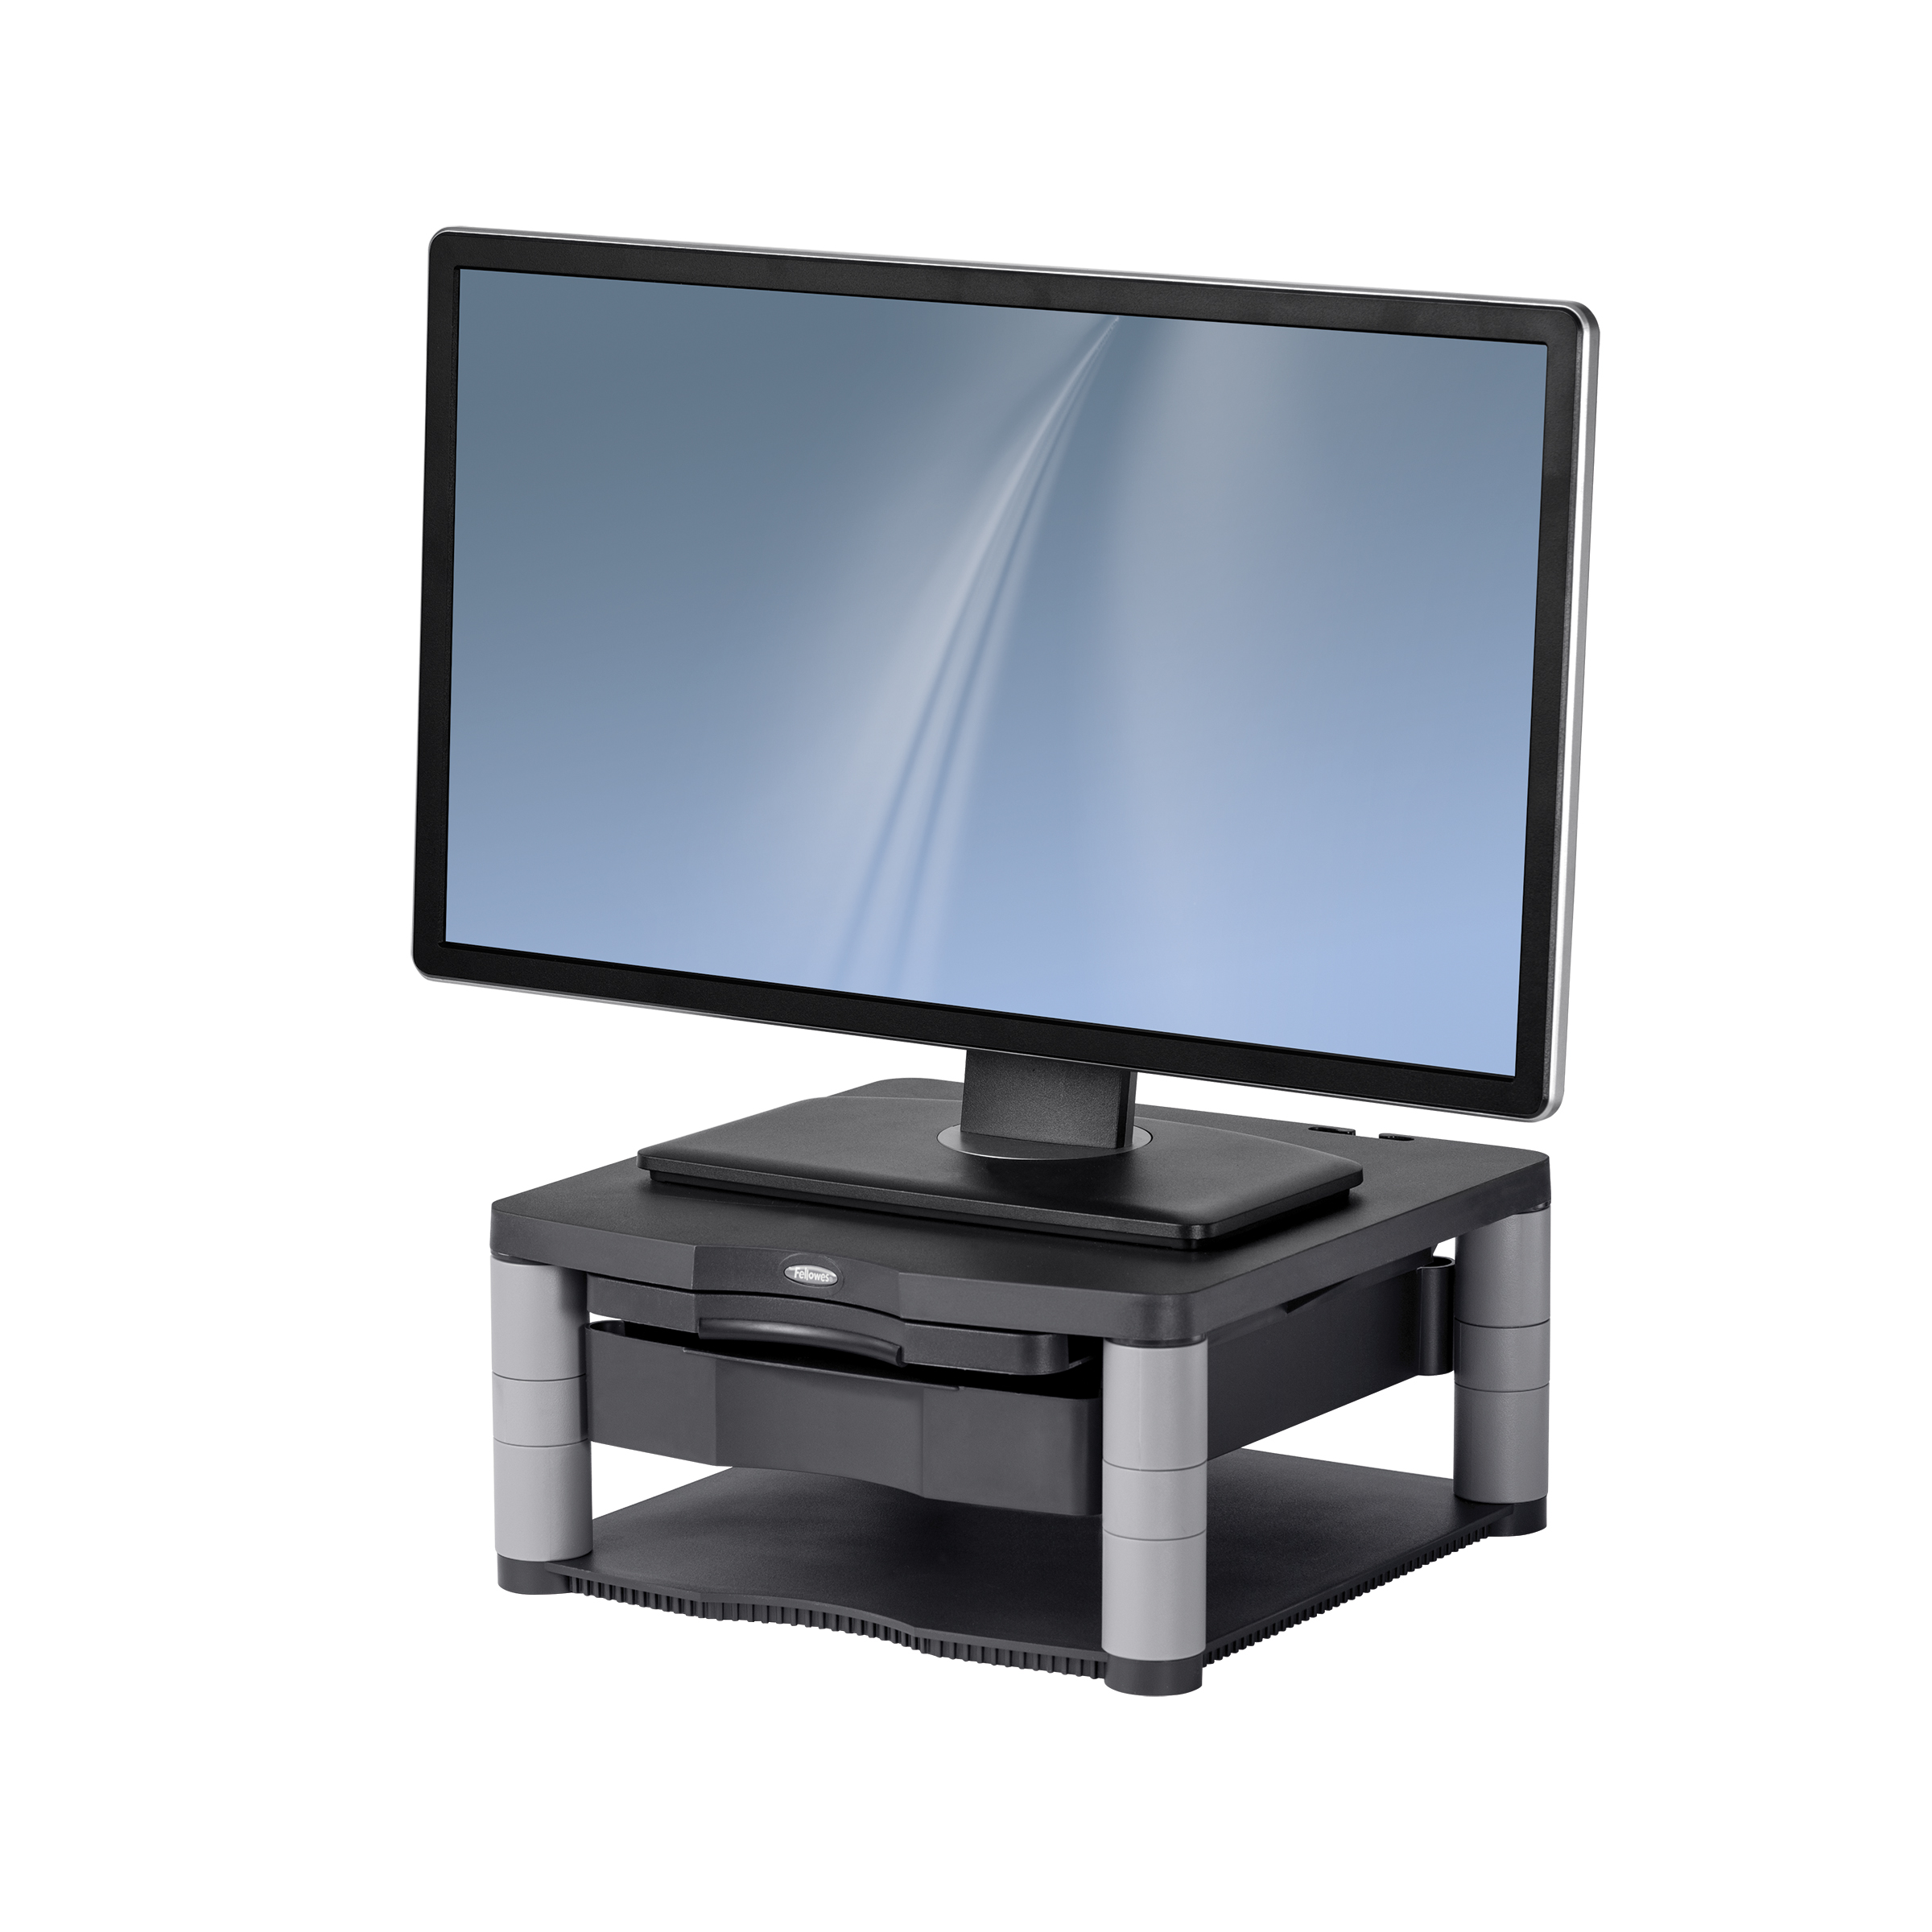 Fellowes Premium Monitor Riser for 21in Capacity 36kg 5 Heights 64-165mm Platinum Ref 91717